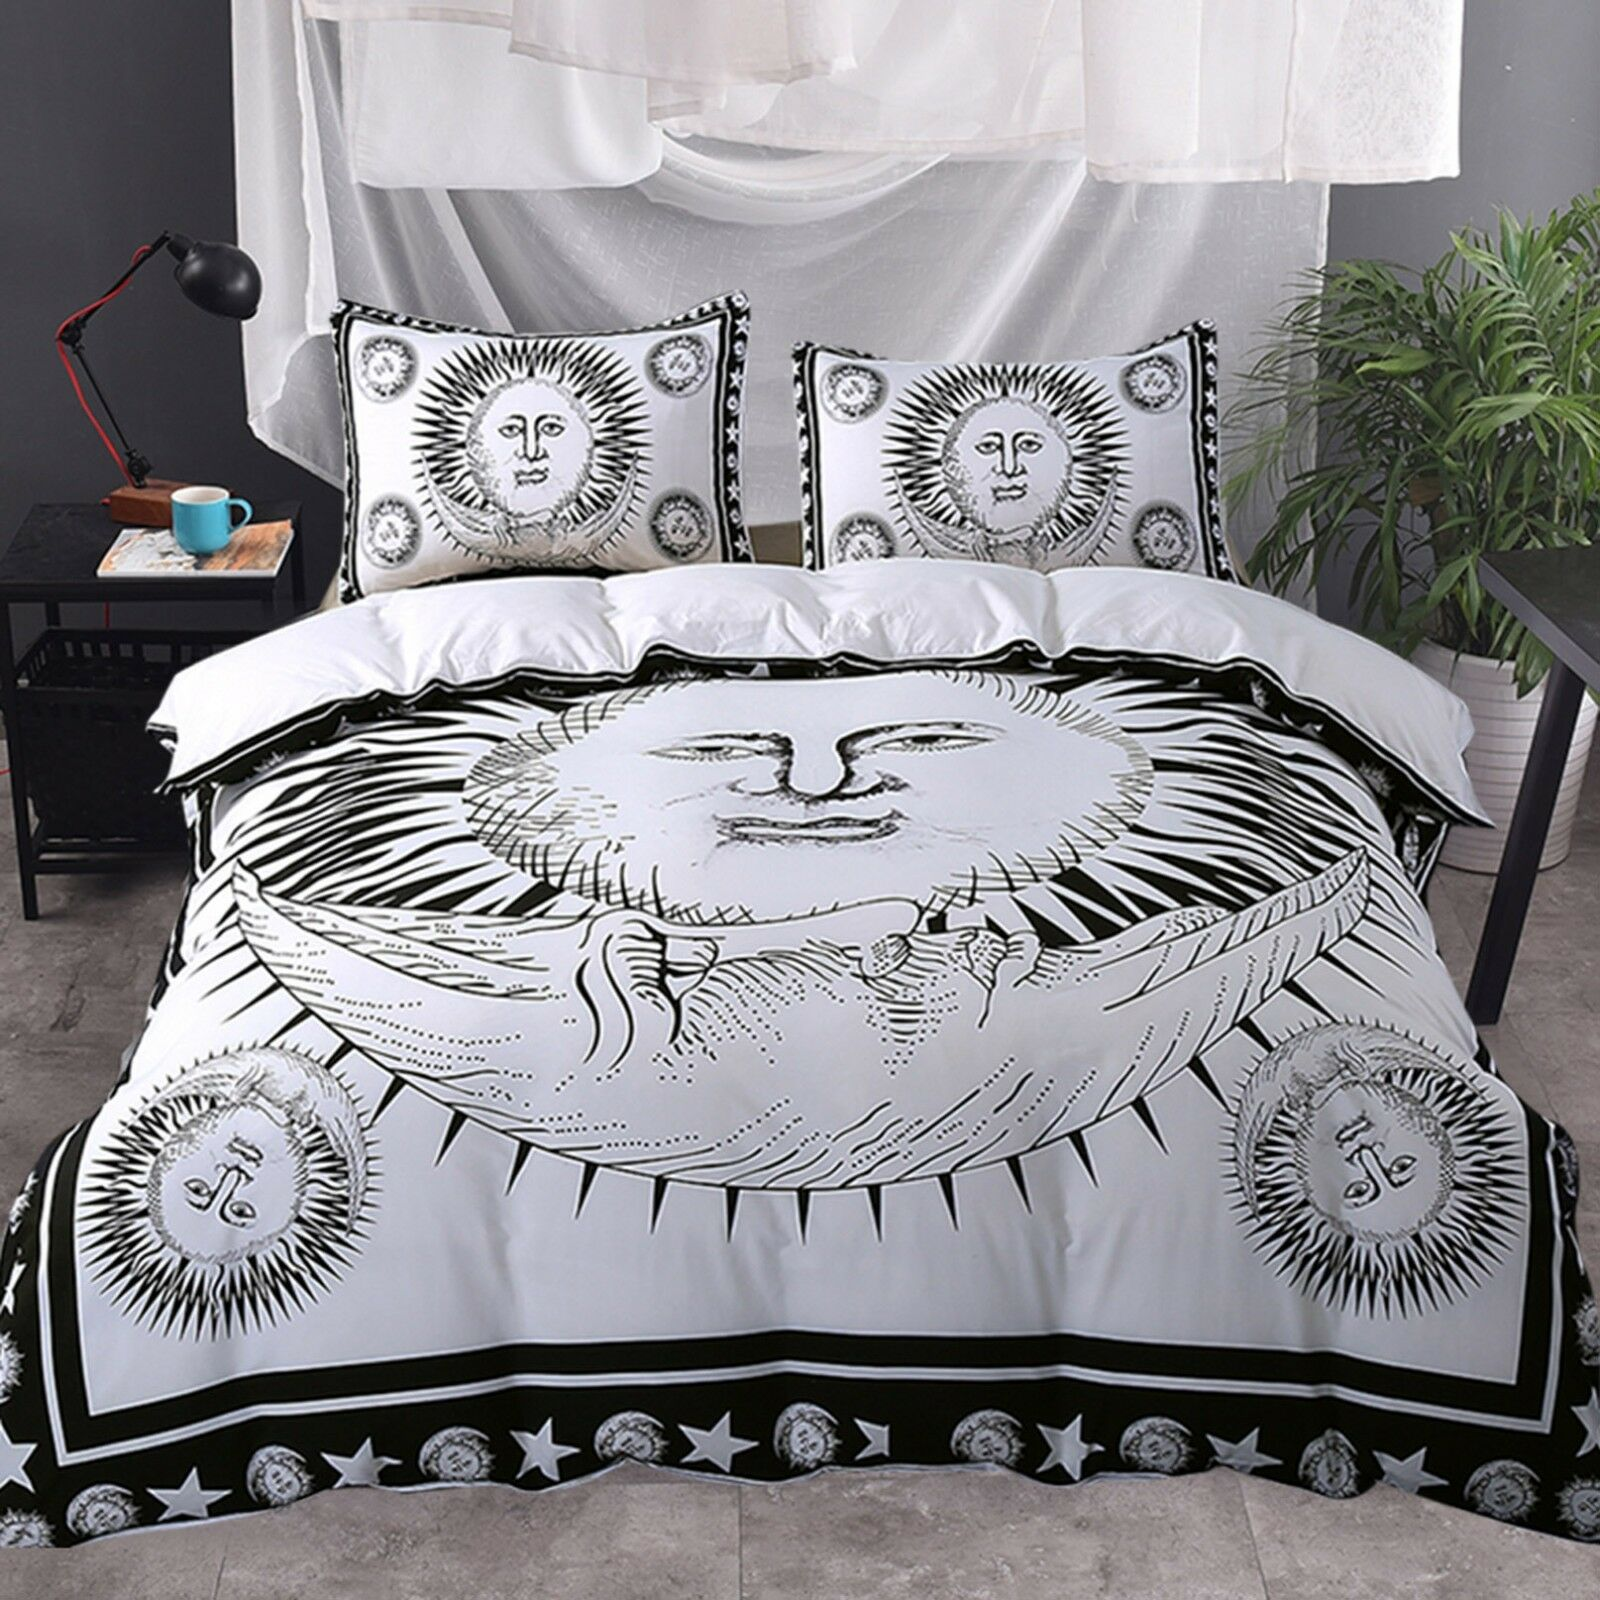 3D Sun God 62 Bed Pillowcases Quilt Duvet Cover Set Single Queen King AU Carly